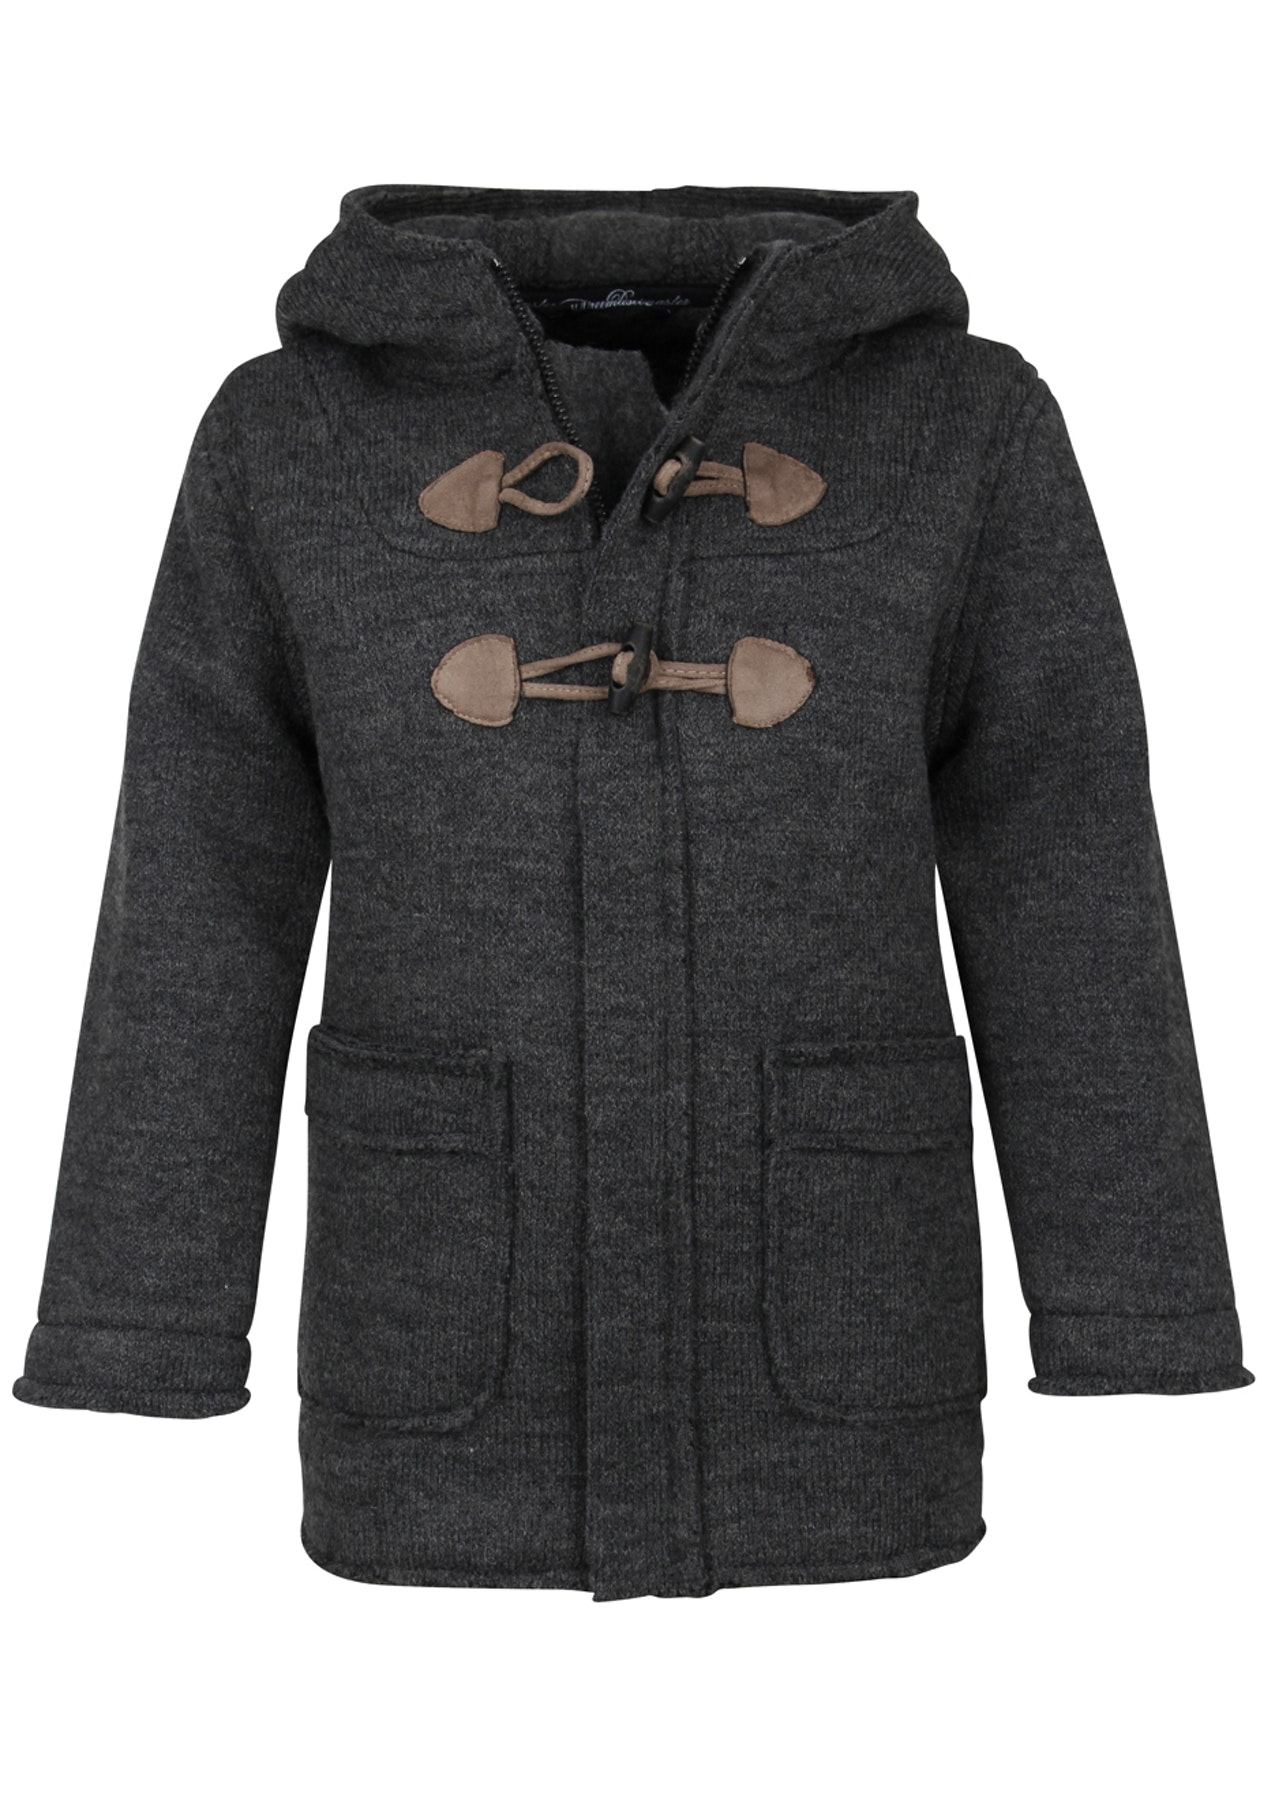 652a205e1 Boys Dreimaster Dufflecoat - Light Grey - DreiMaster Kids - Onceit